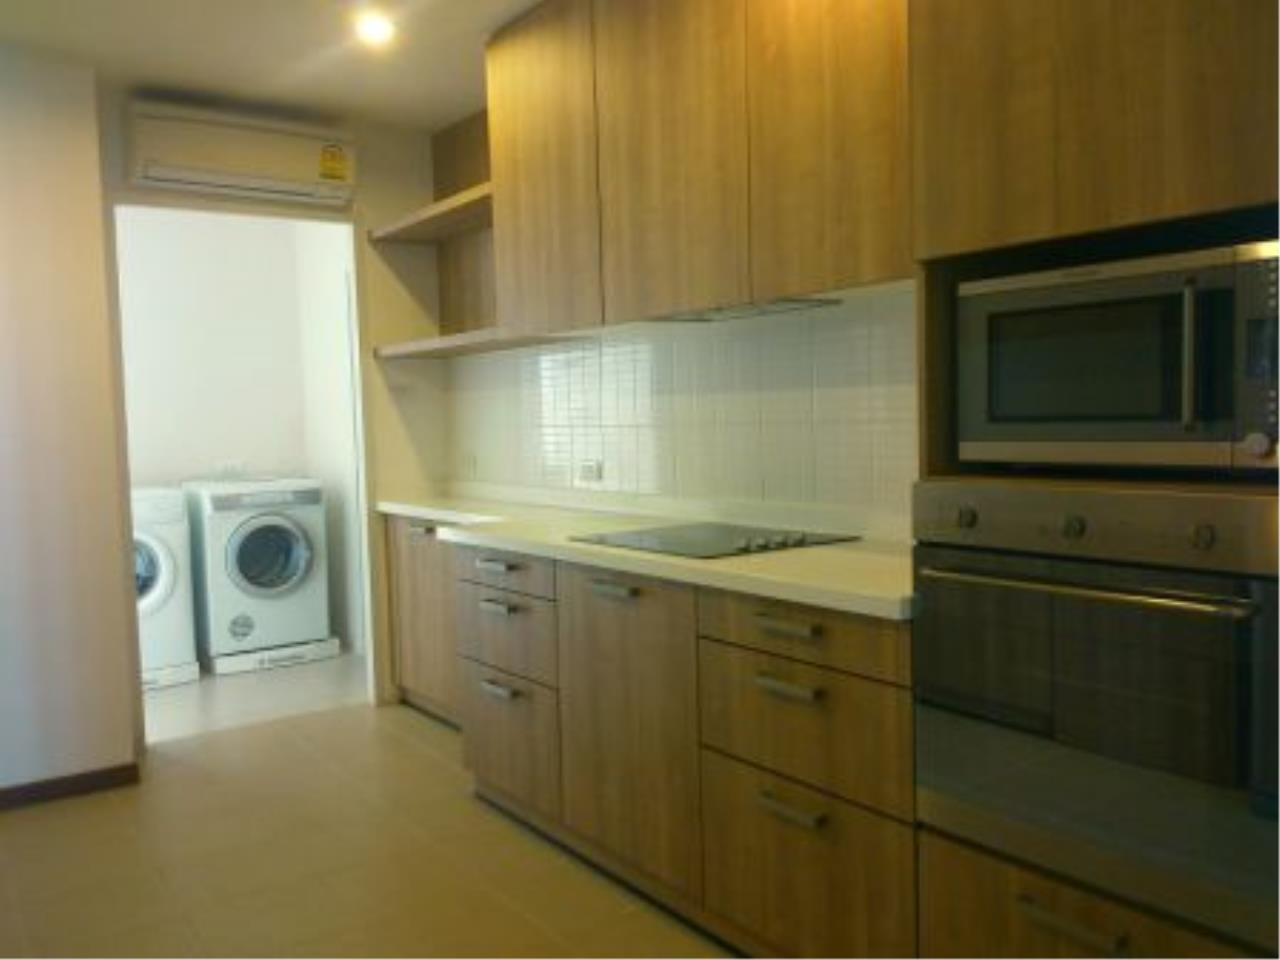 BKK Condos Agency's Nice 2 bedroom with large balcony for rent at 31 Residence  1